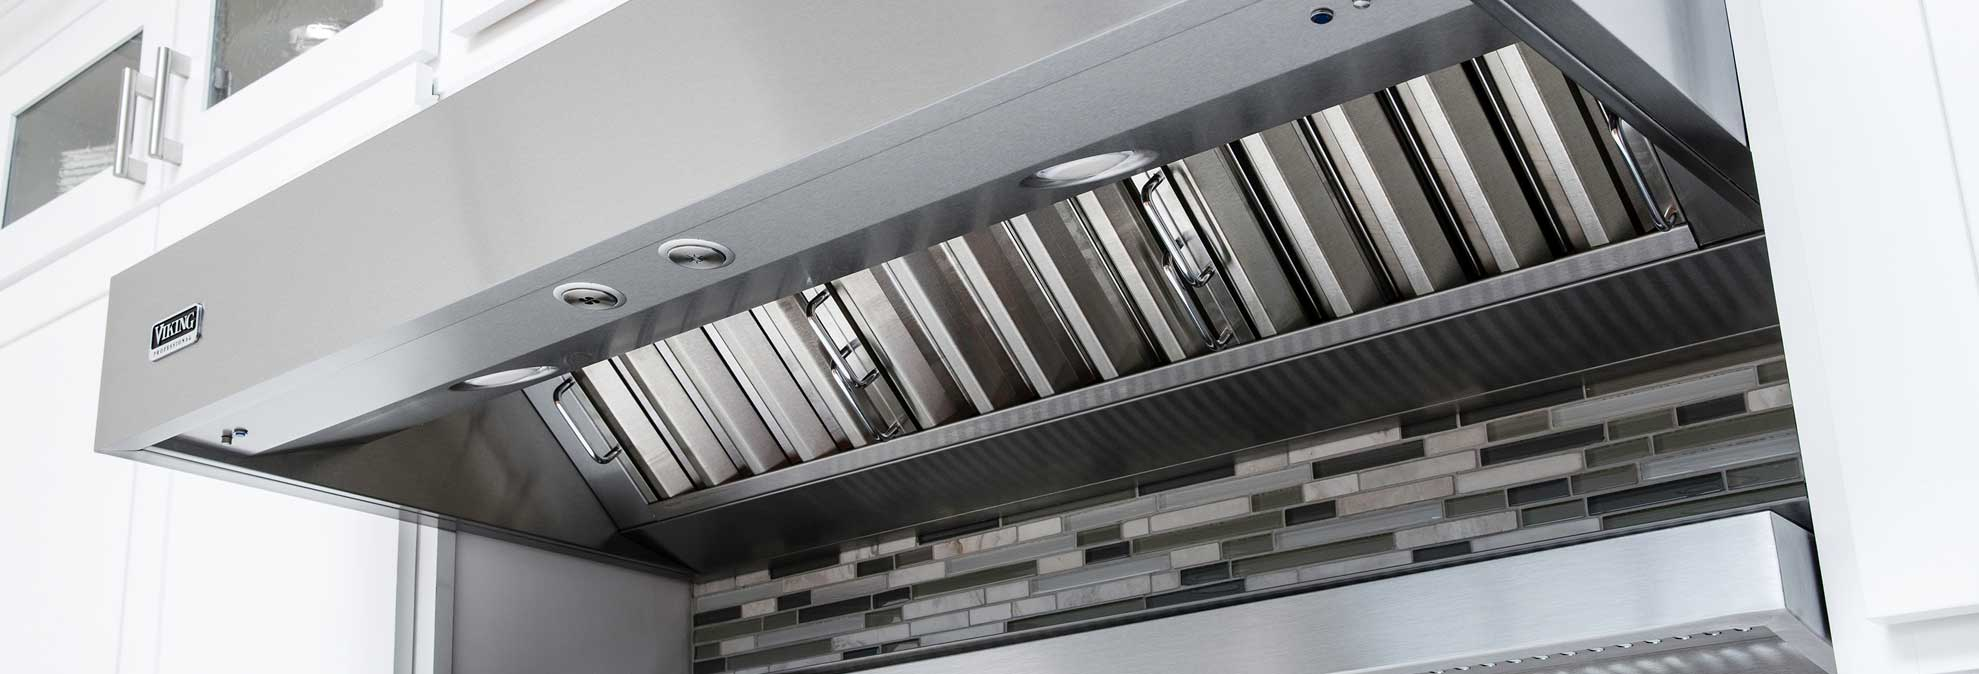 kitchen exhaust fan commercial toys r us kitchens best range hood buying guide - consumer reports